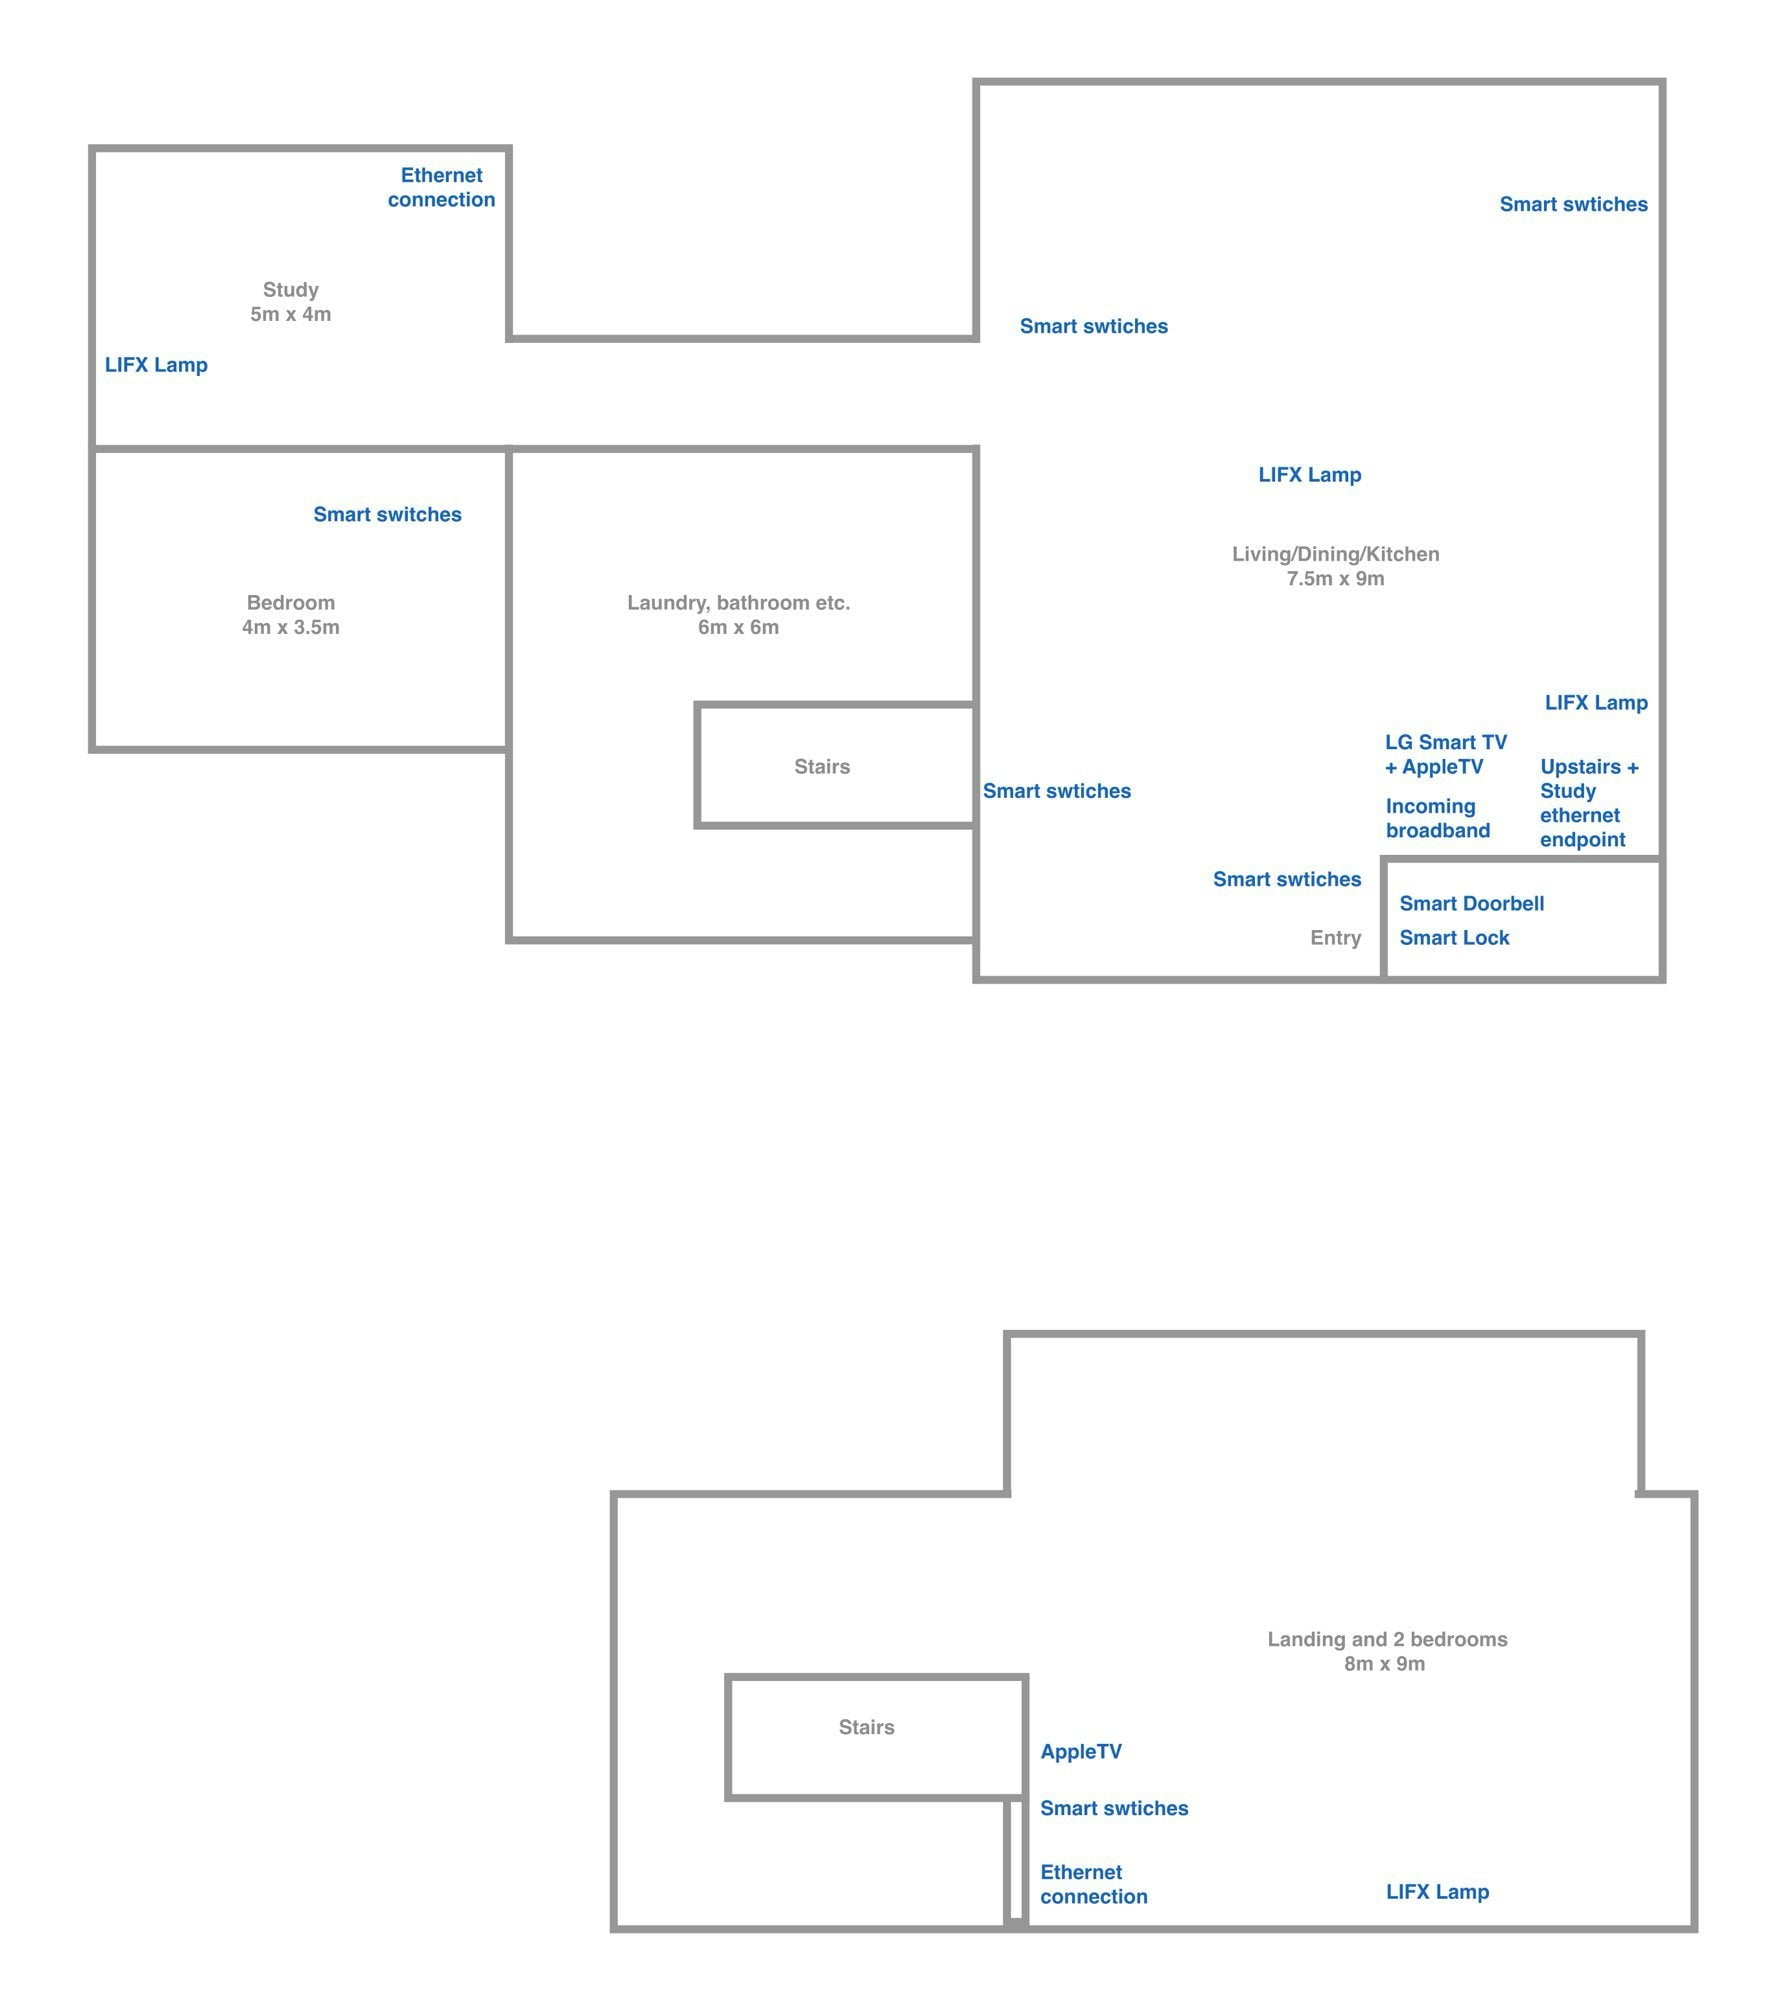 Planning a HomeKit Renovation Anything Important to Consider